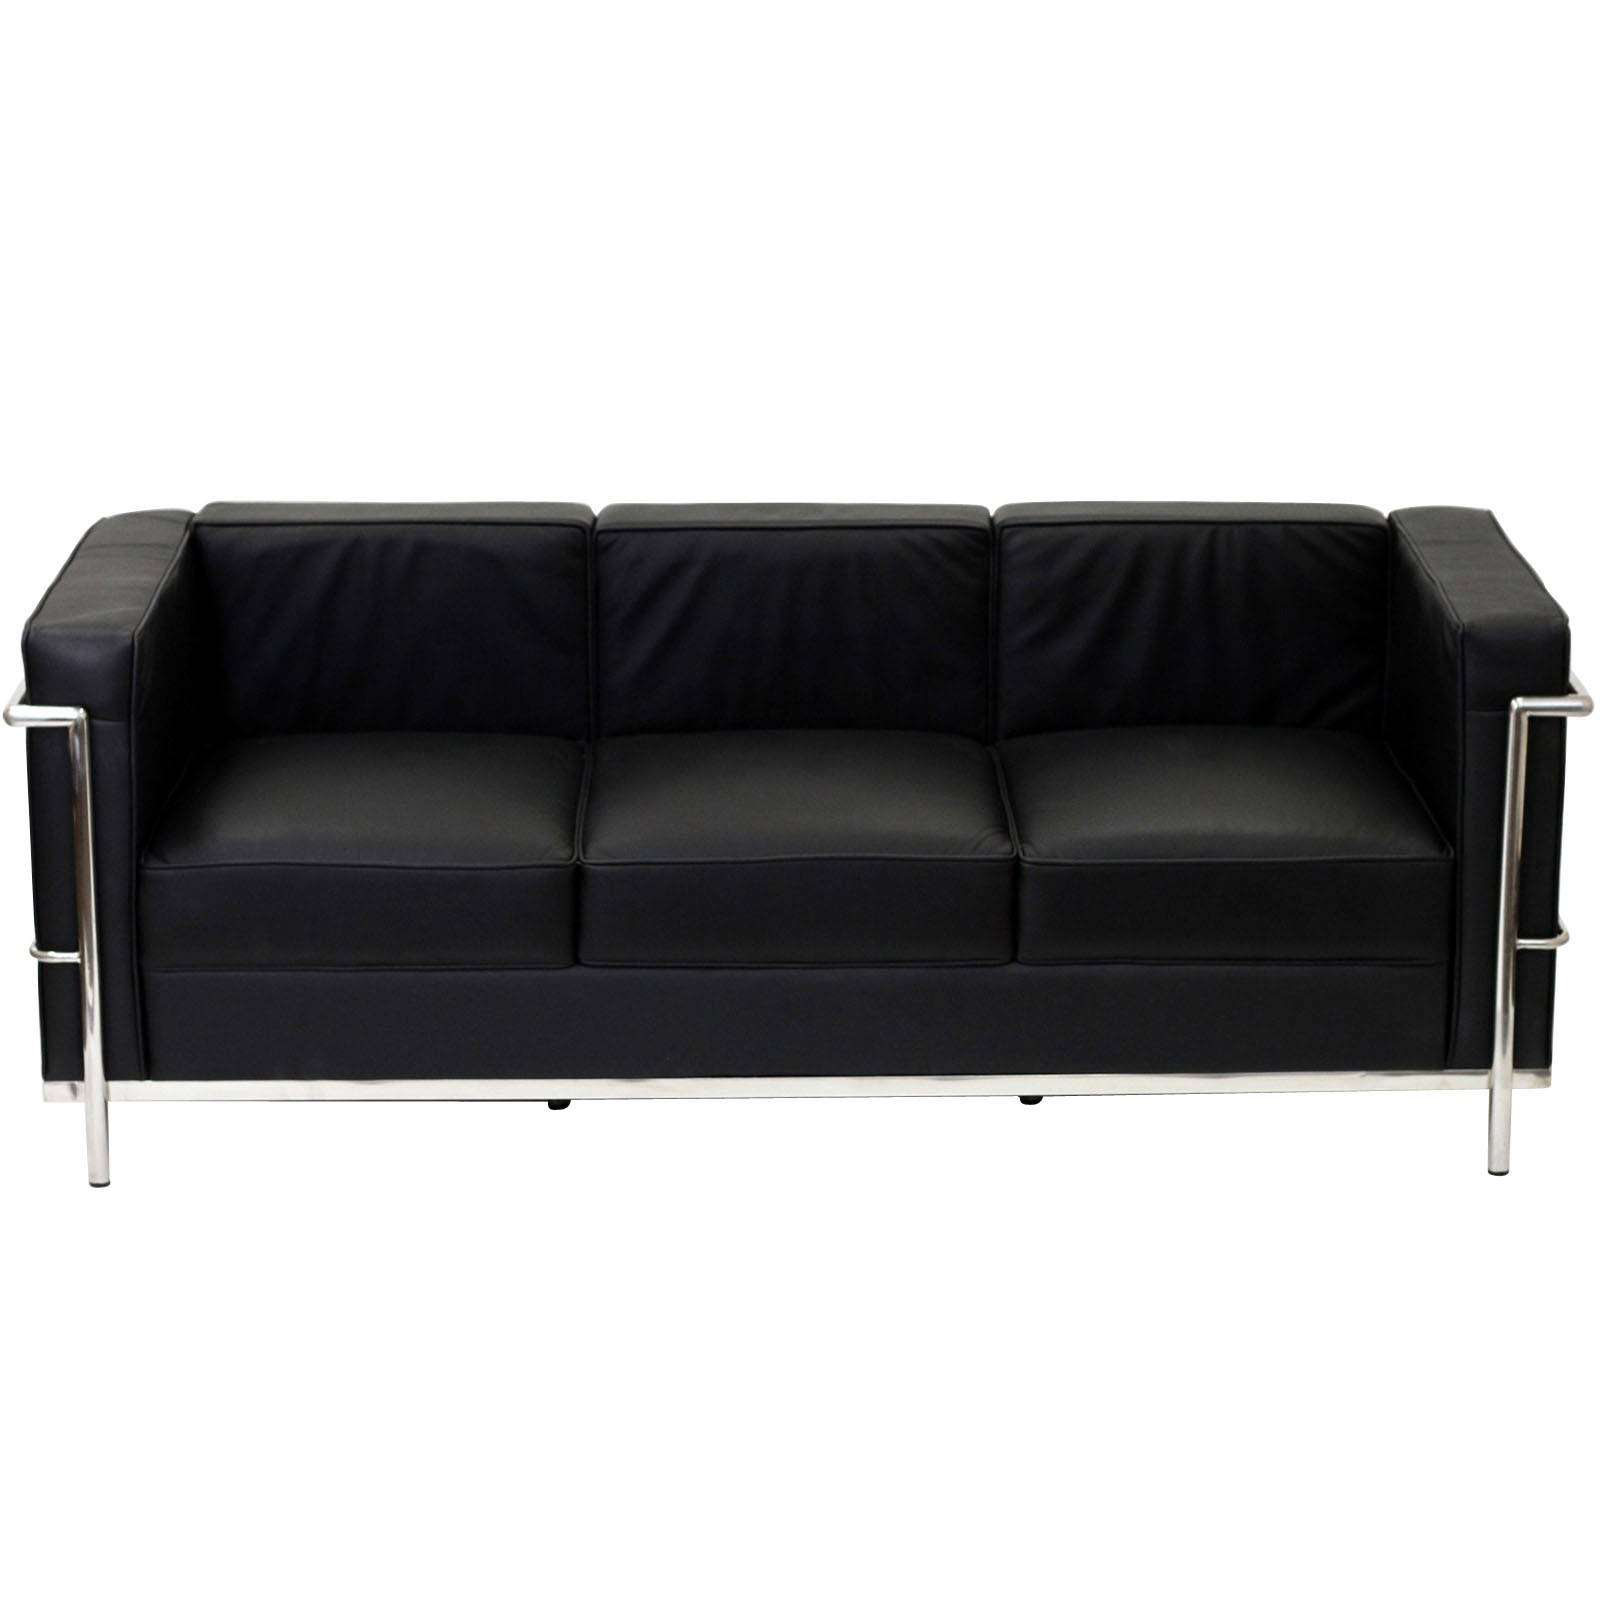 Le corbusier style lc2 sofa leather for Le corbusier sofa nachbau